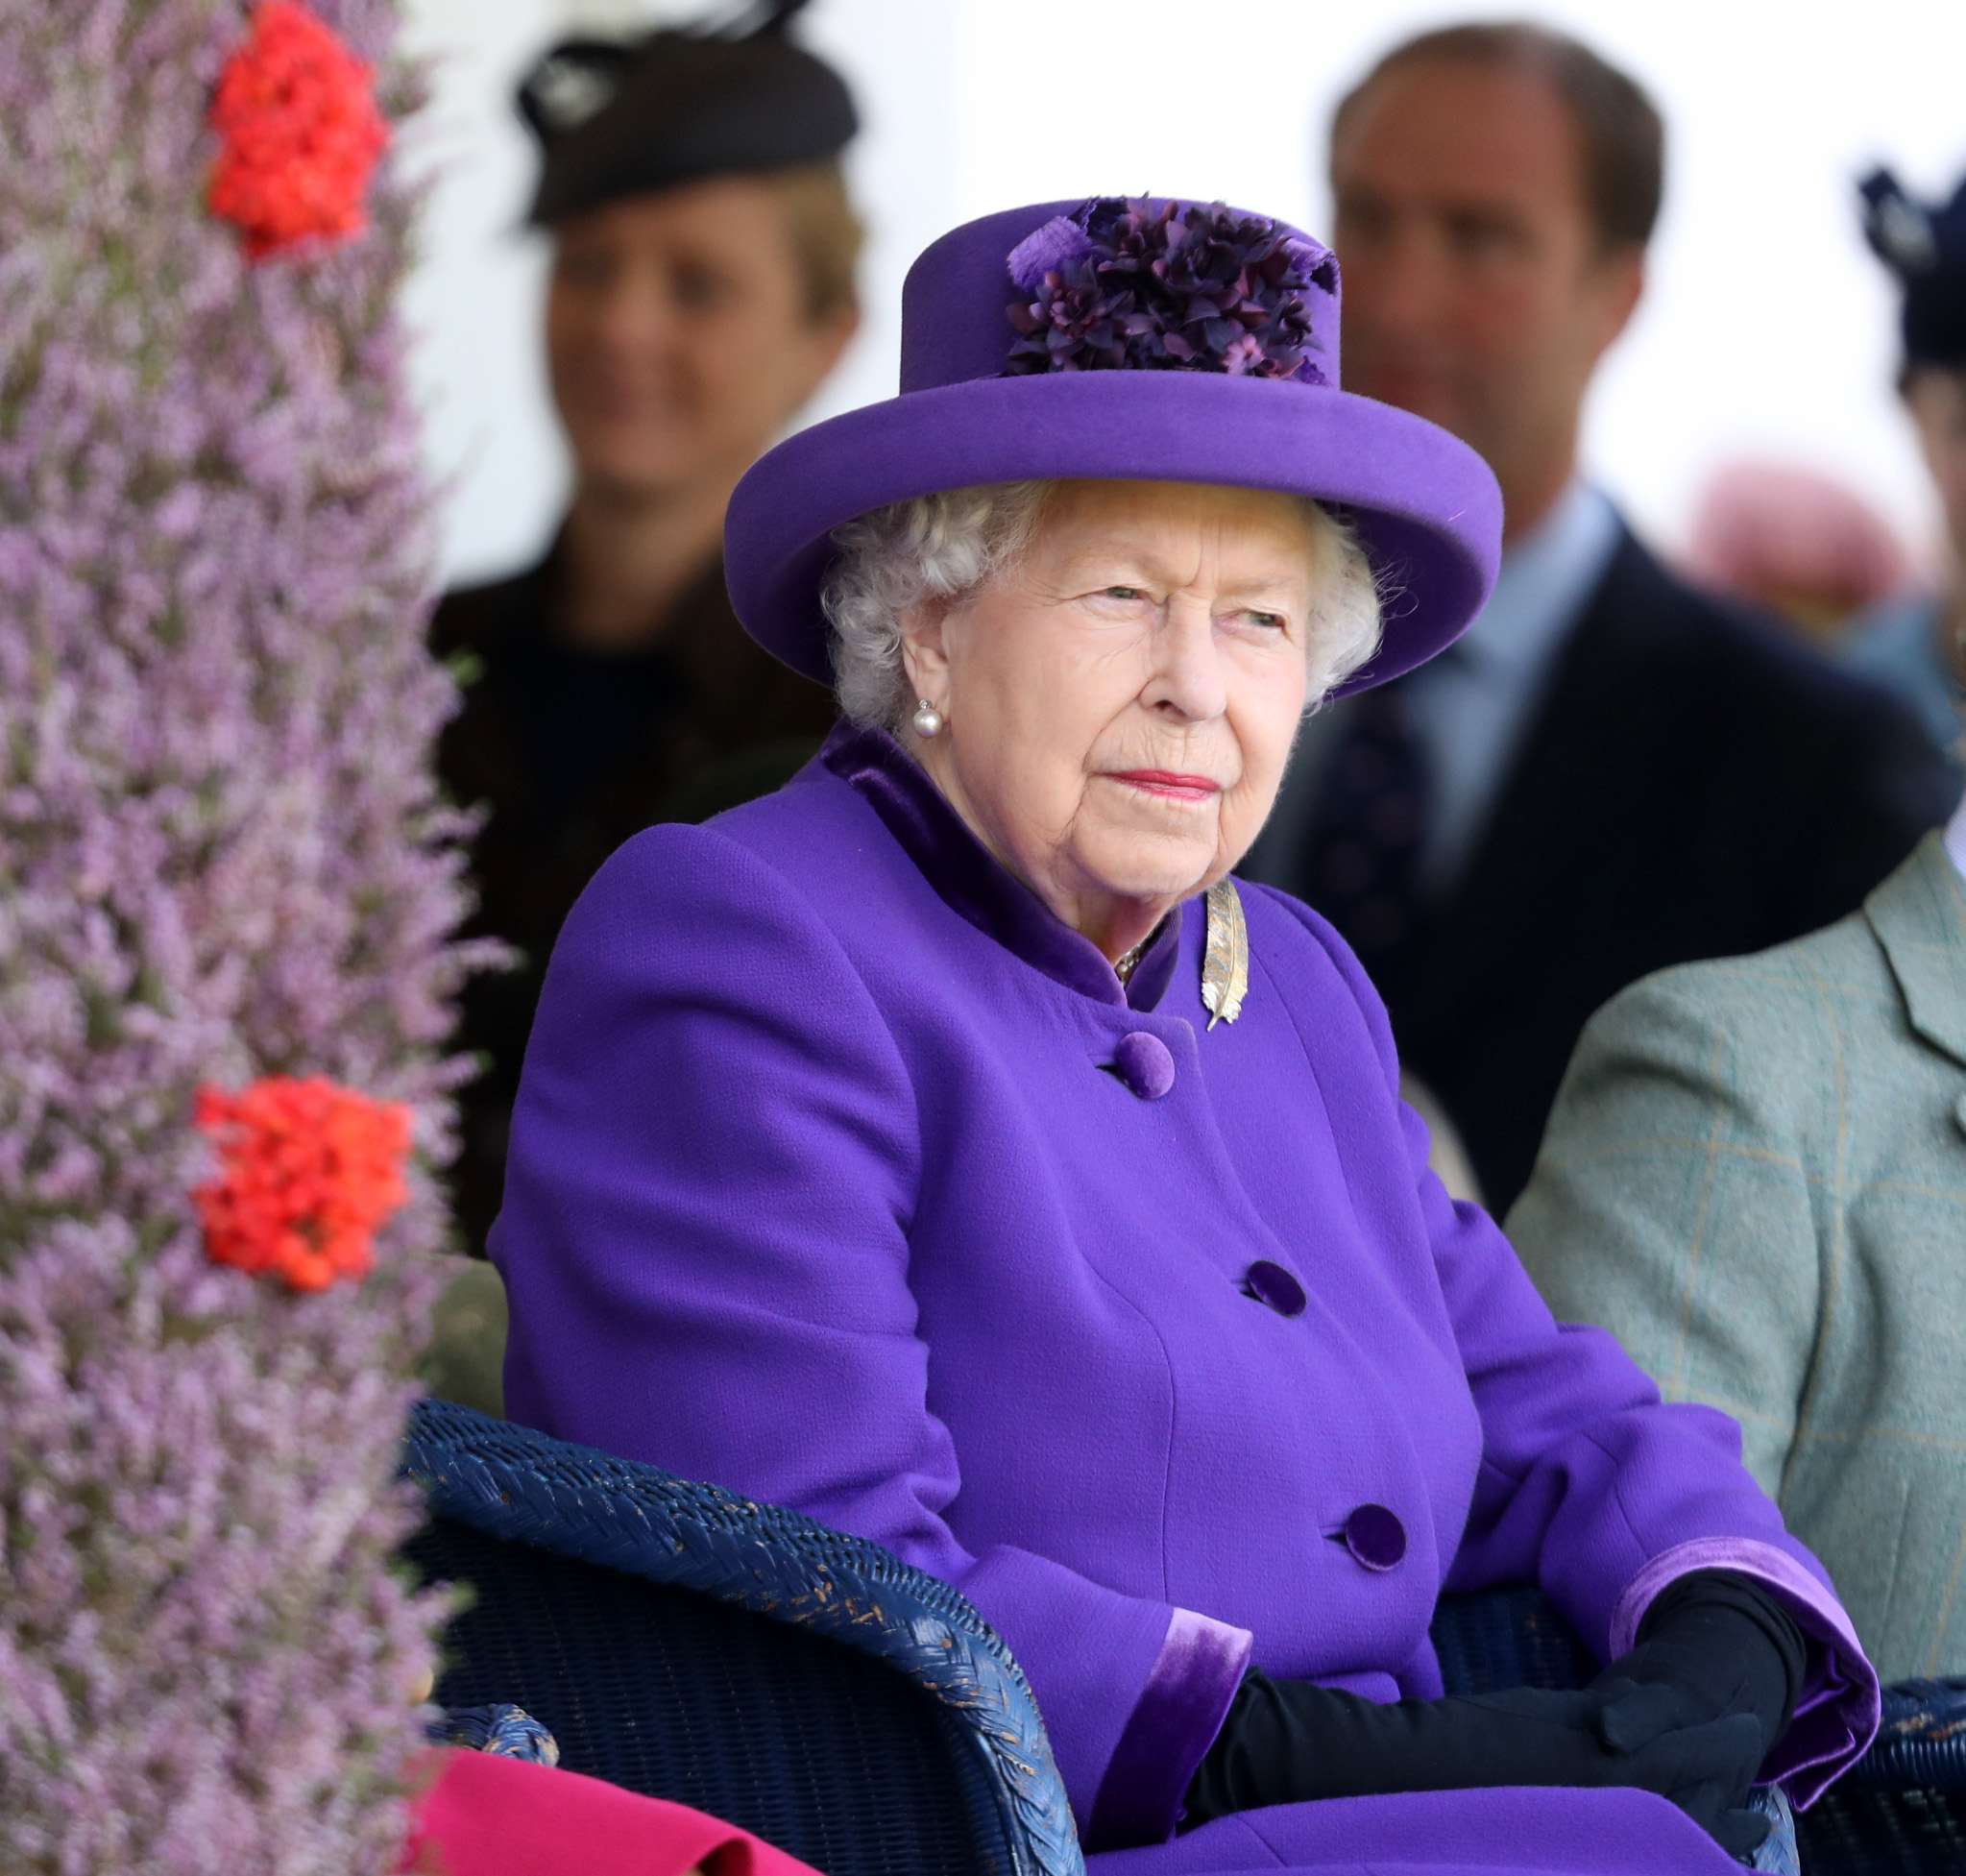 BRAEMAR, SCOTLAND - SEPTEMBER 07: Queen Elizabeth II during the 2019 Braemar Highland Games at The Princess Royal and Duke of Fife Memorial Park on September 07, 2019 in Braemar, Scotland. (Photo by Chris Jackson/Getty Images)